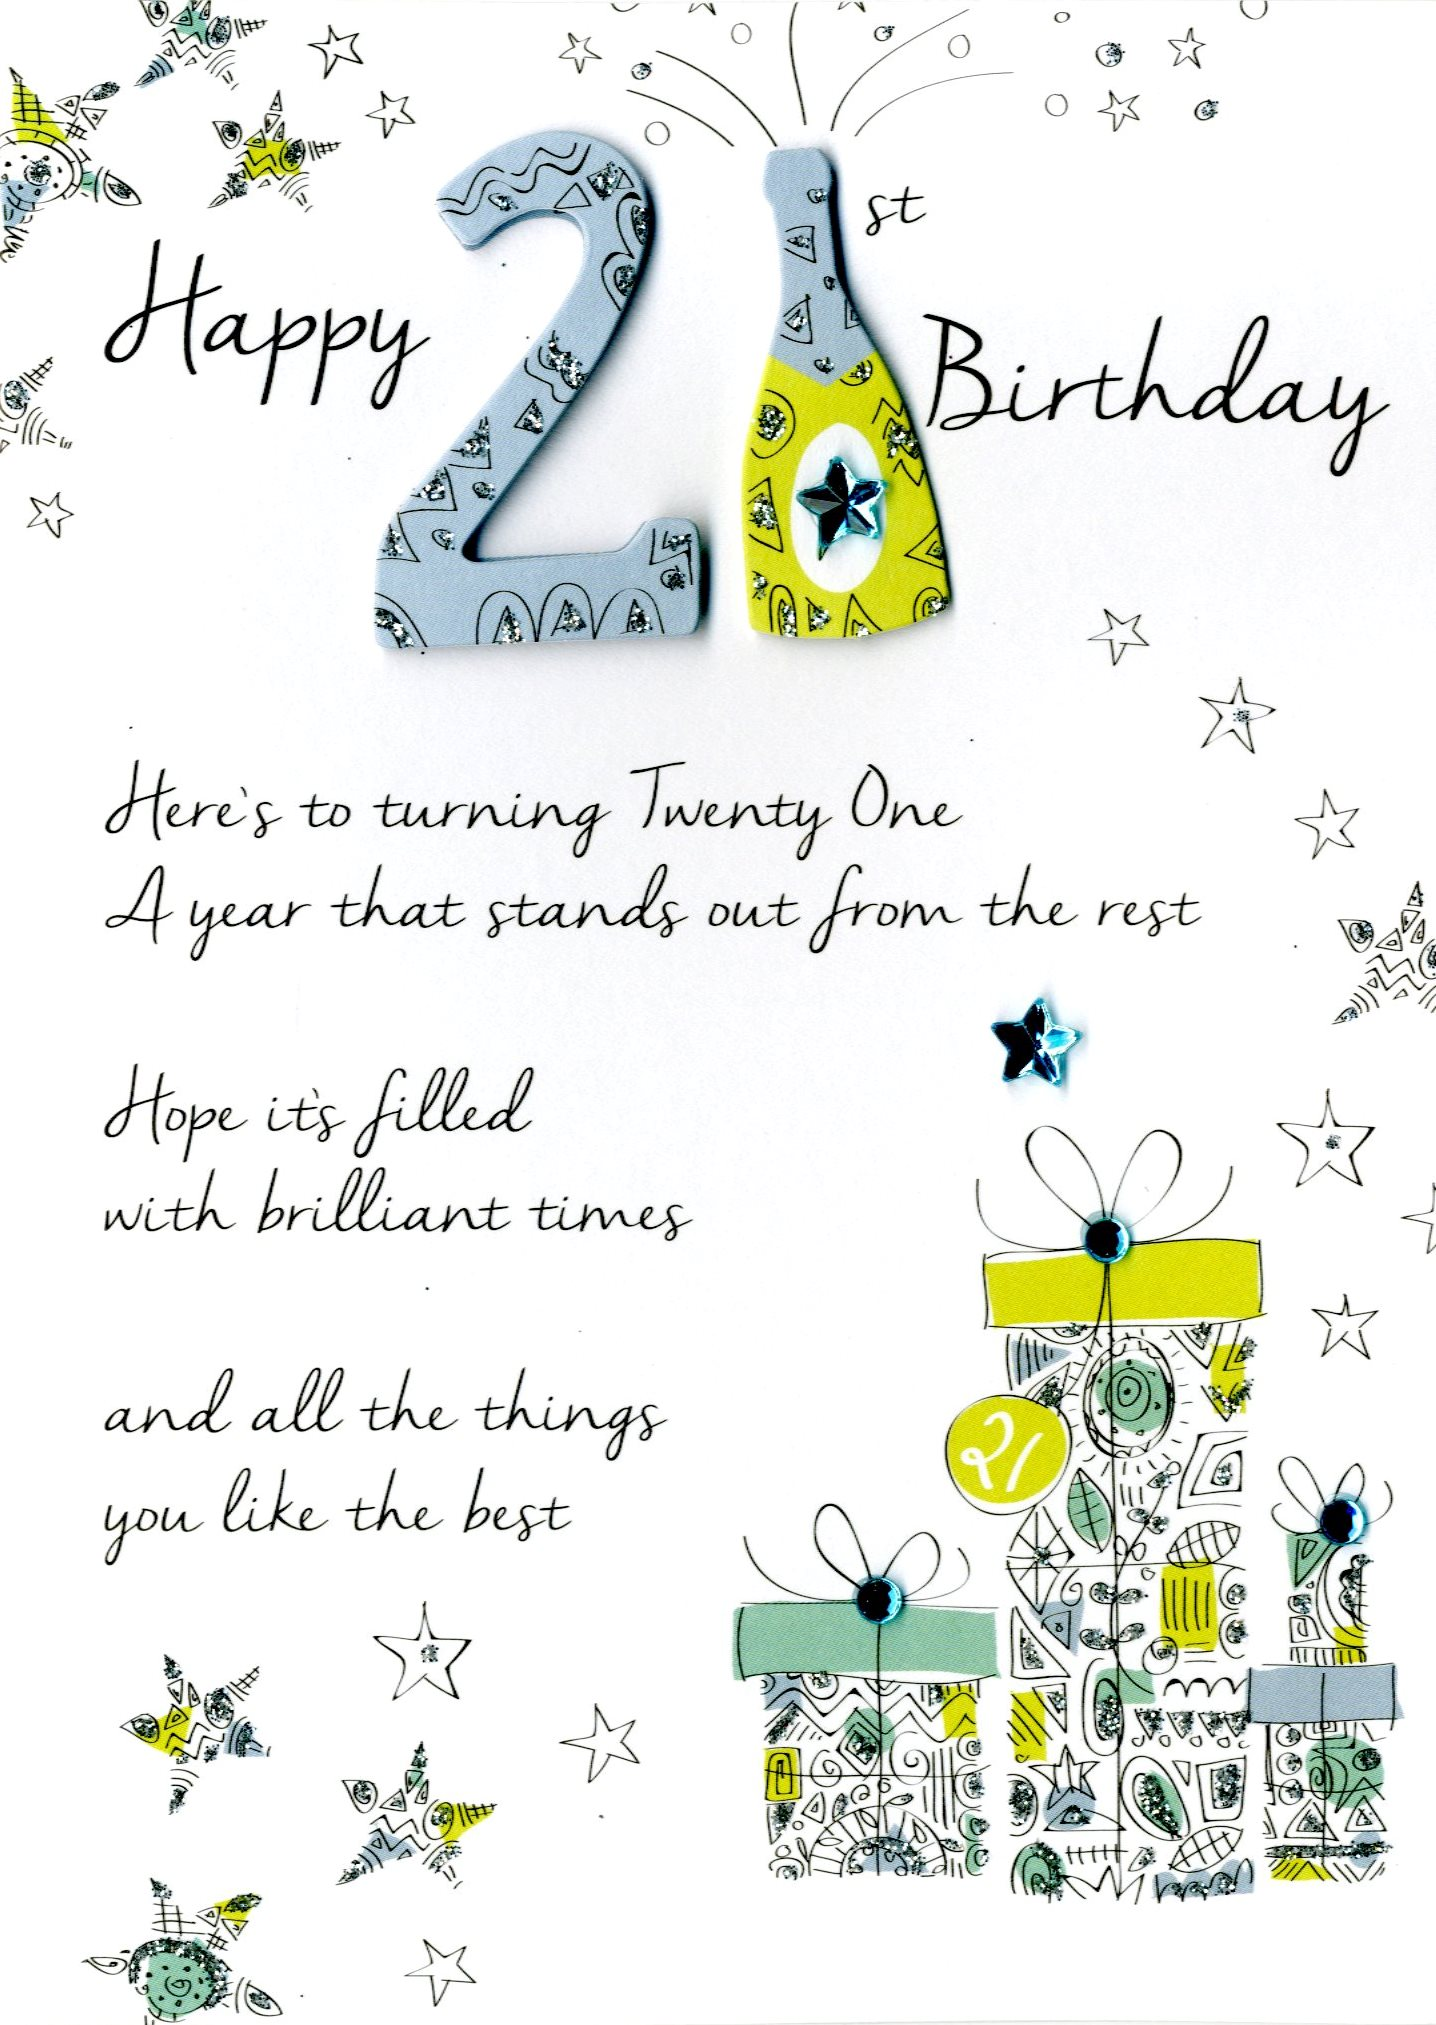 Happy 21st birthday greeting card second nature just to say cards sentinel happy 21st birthday greeting card second nature just to say cards bookmarktalkfo Image collections